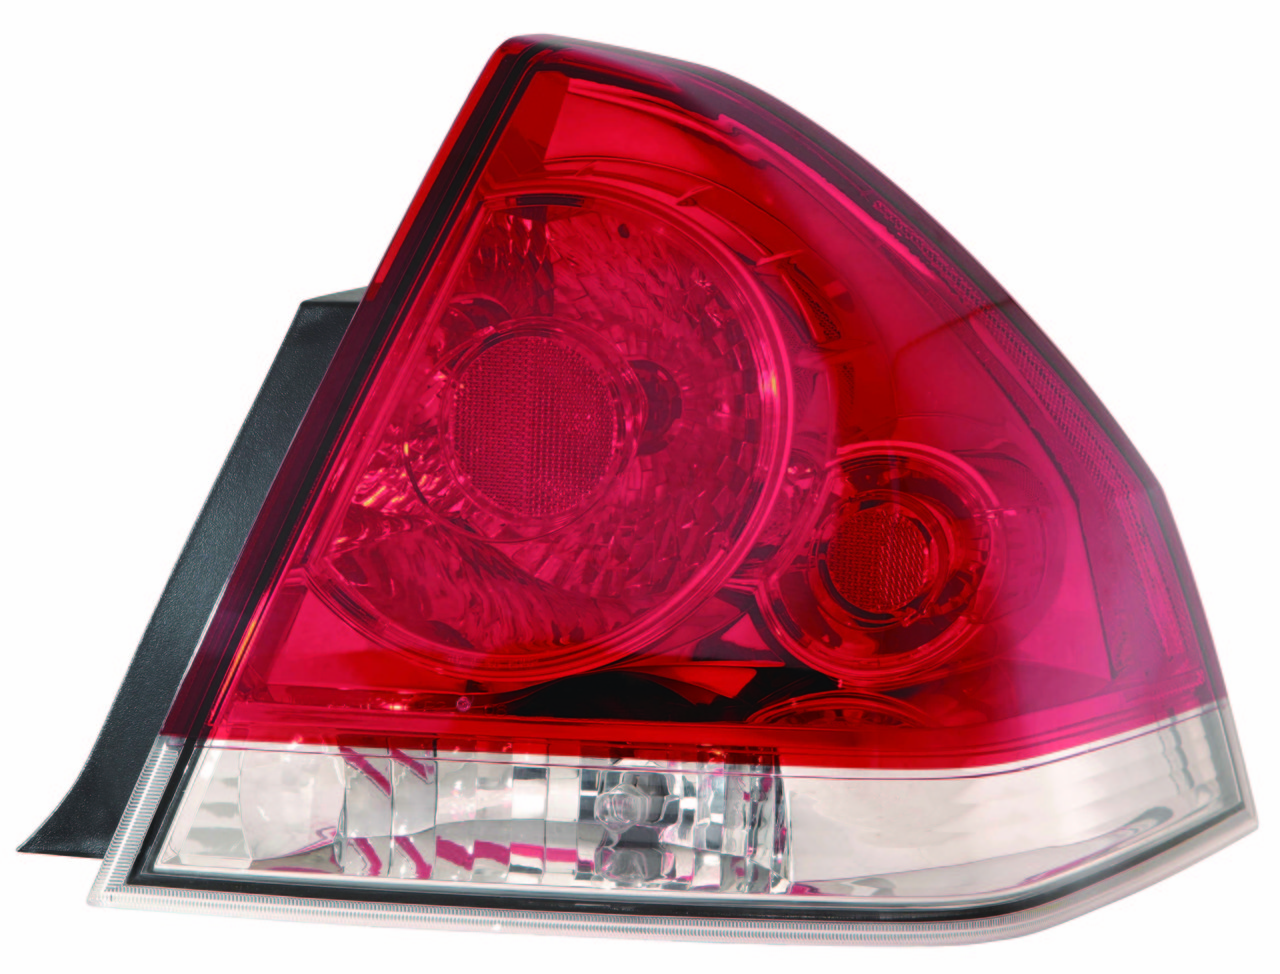 Chevrolet Impala 2006 2007 2008 2009 tail light right passenger